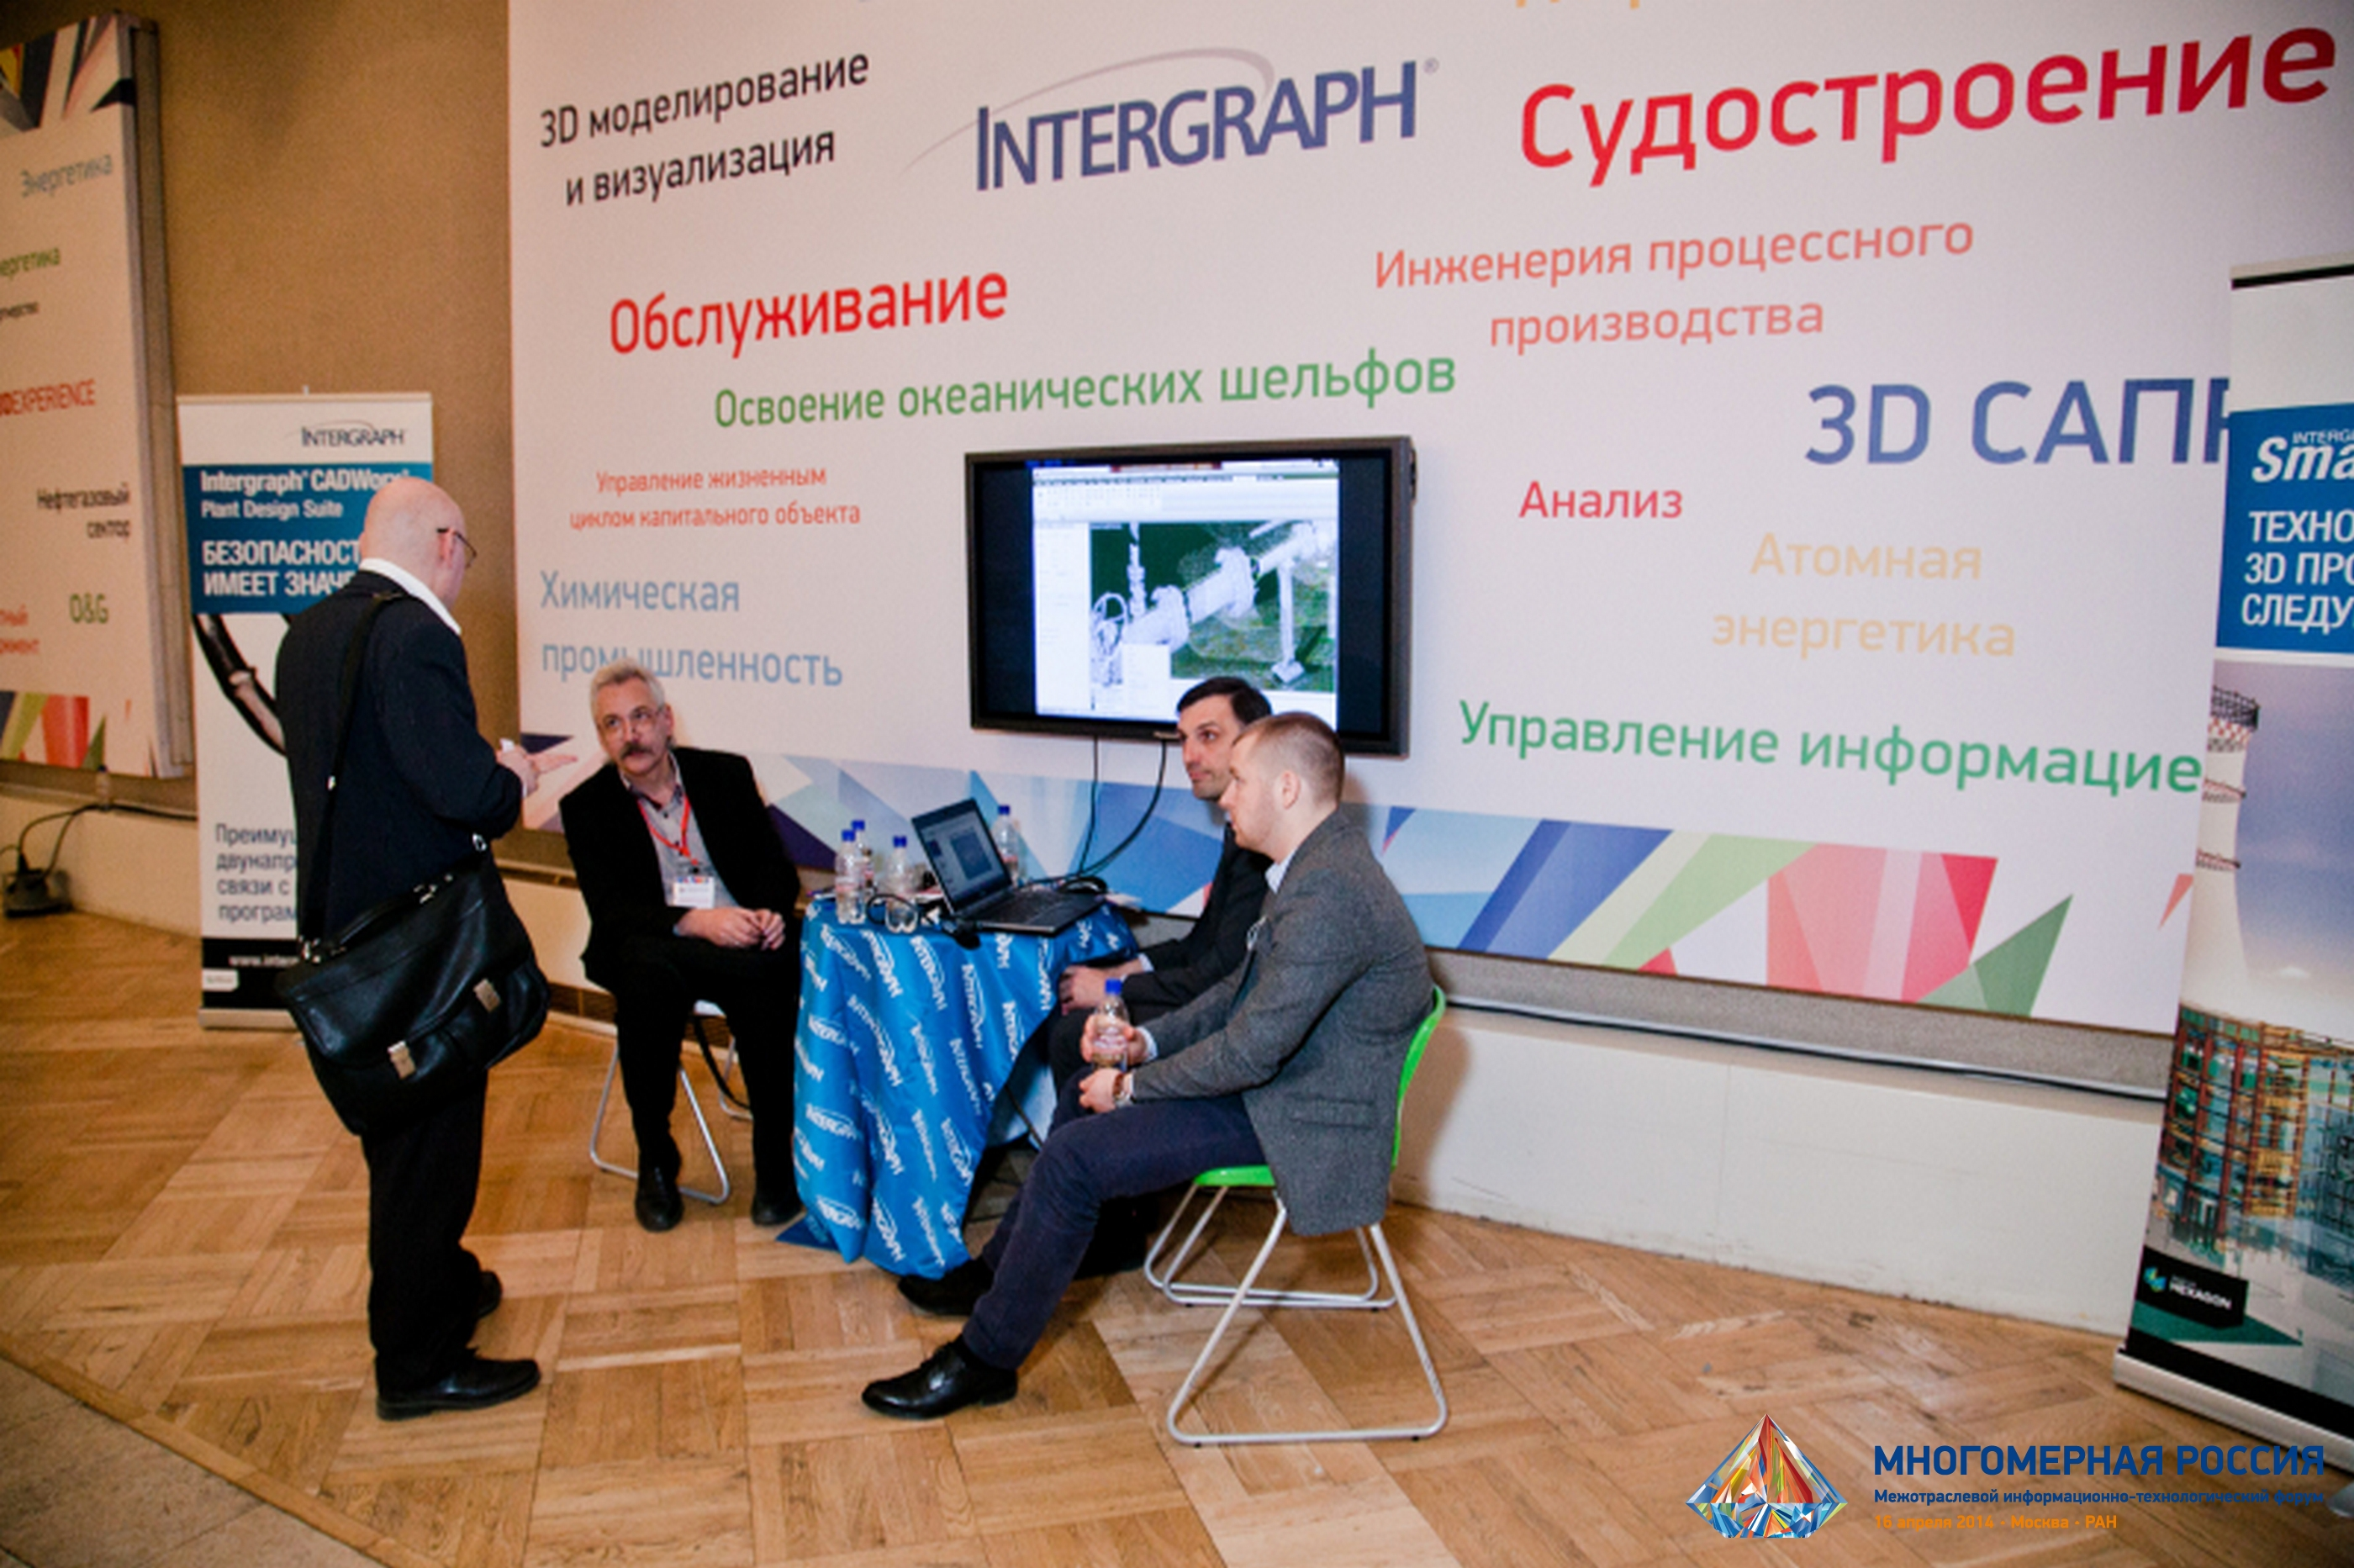 Стенд Intergraph